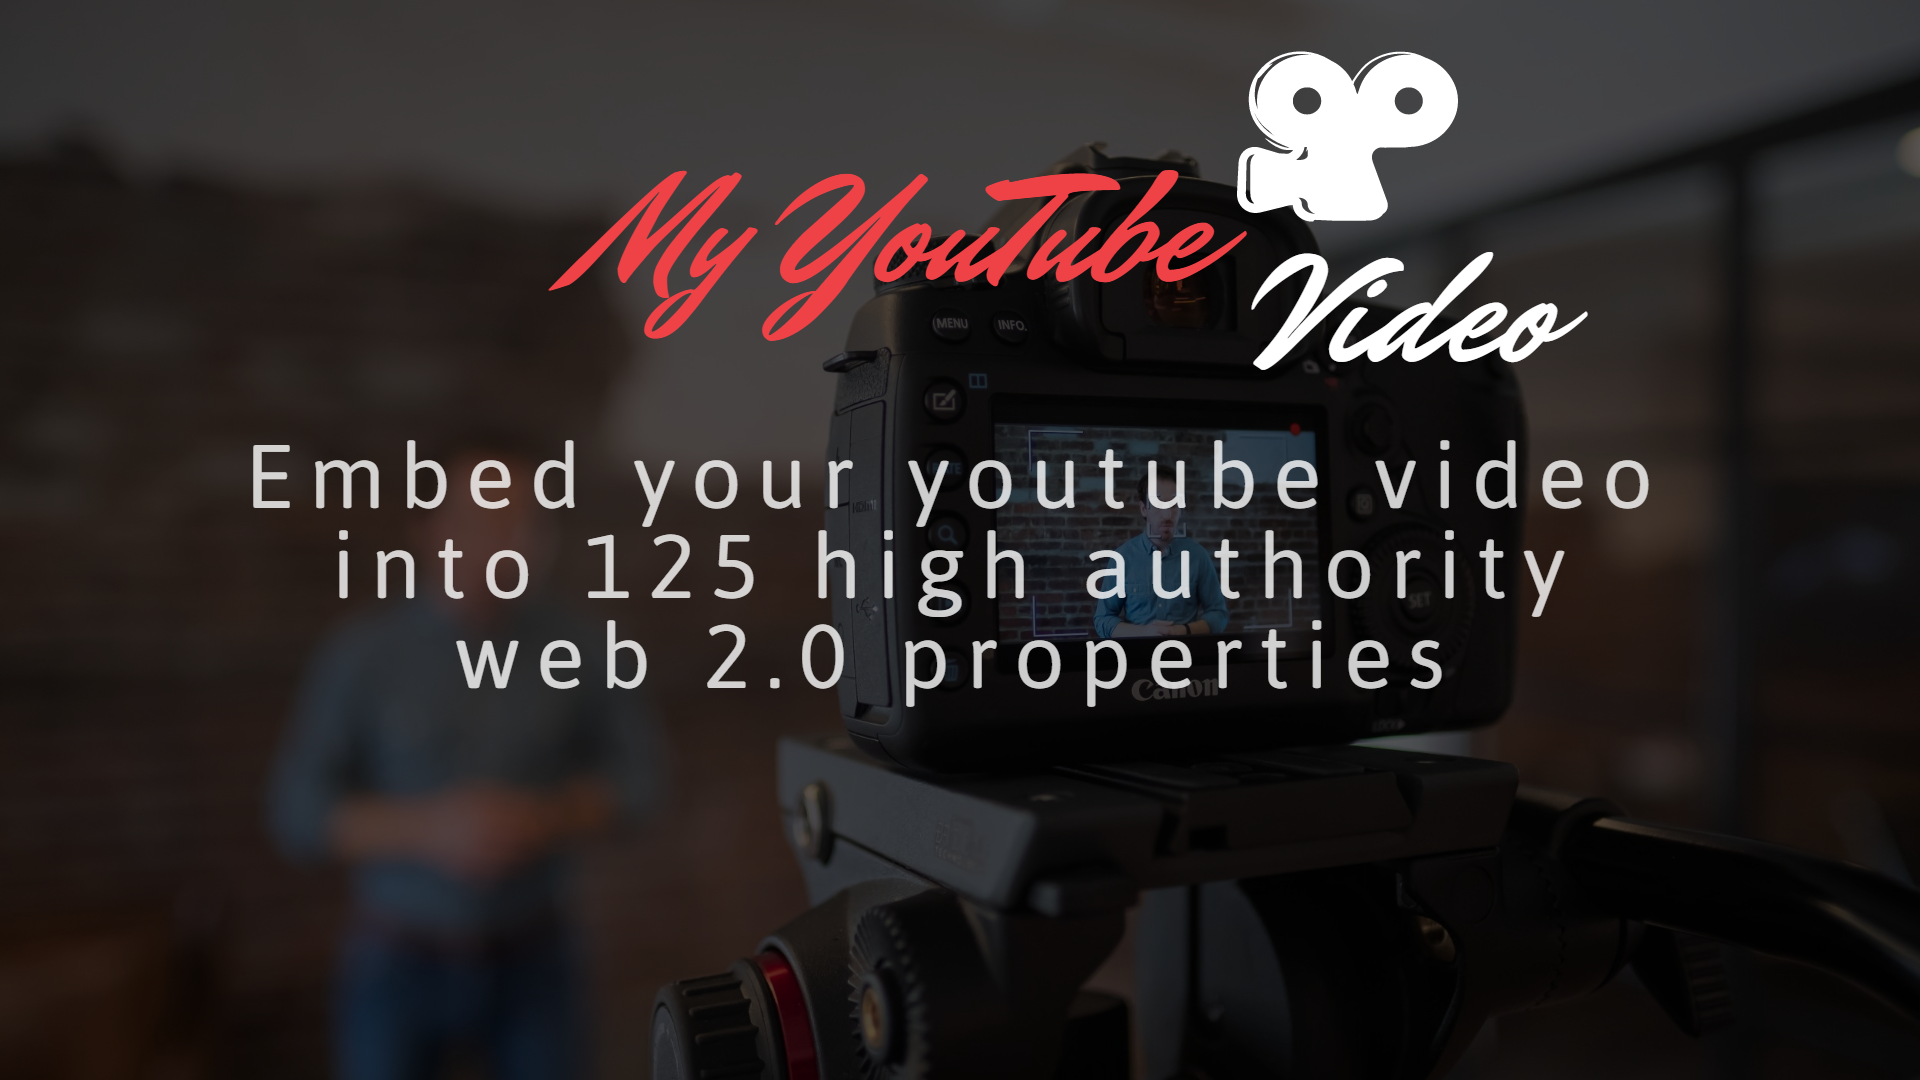 I will embed your YouTube video into 125 High Authority web 2.0 properties